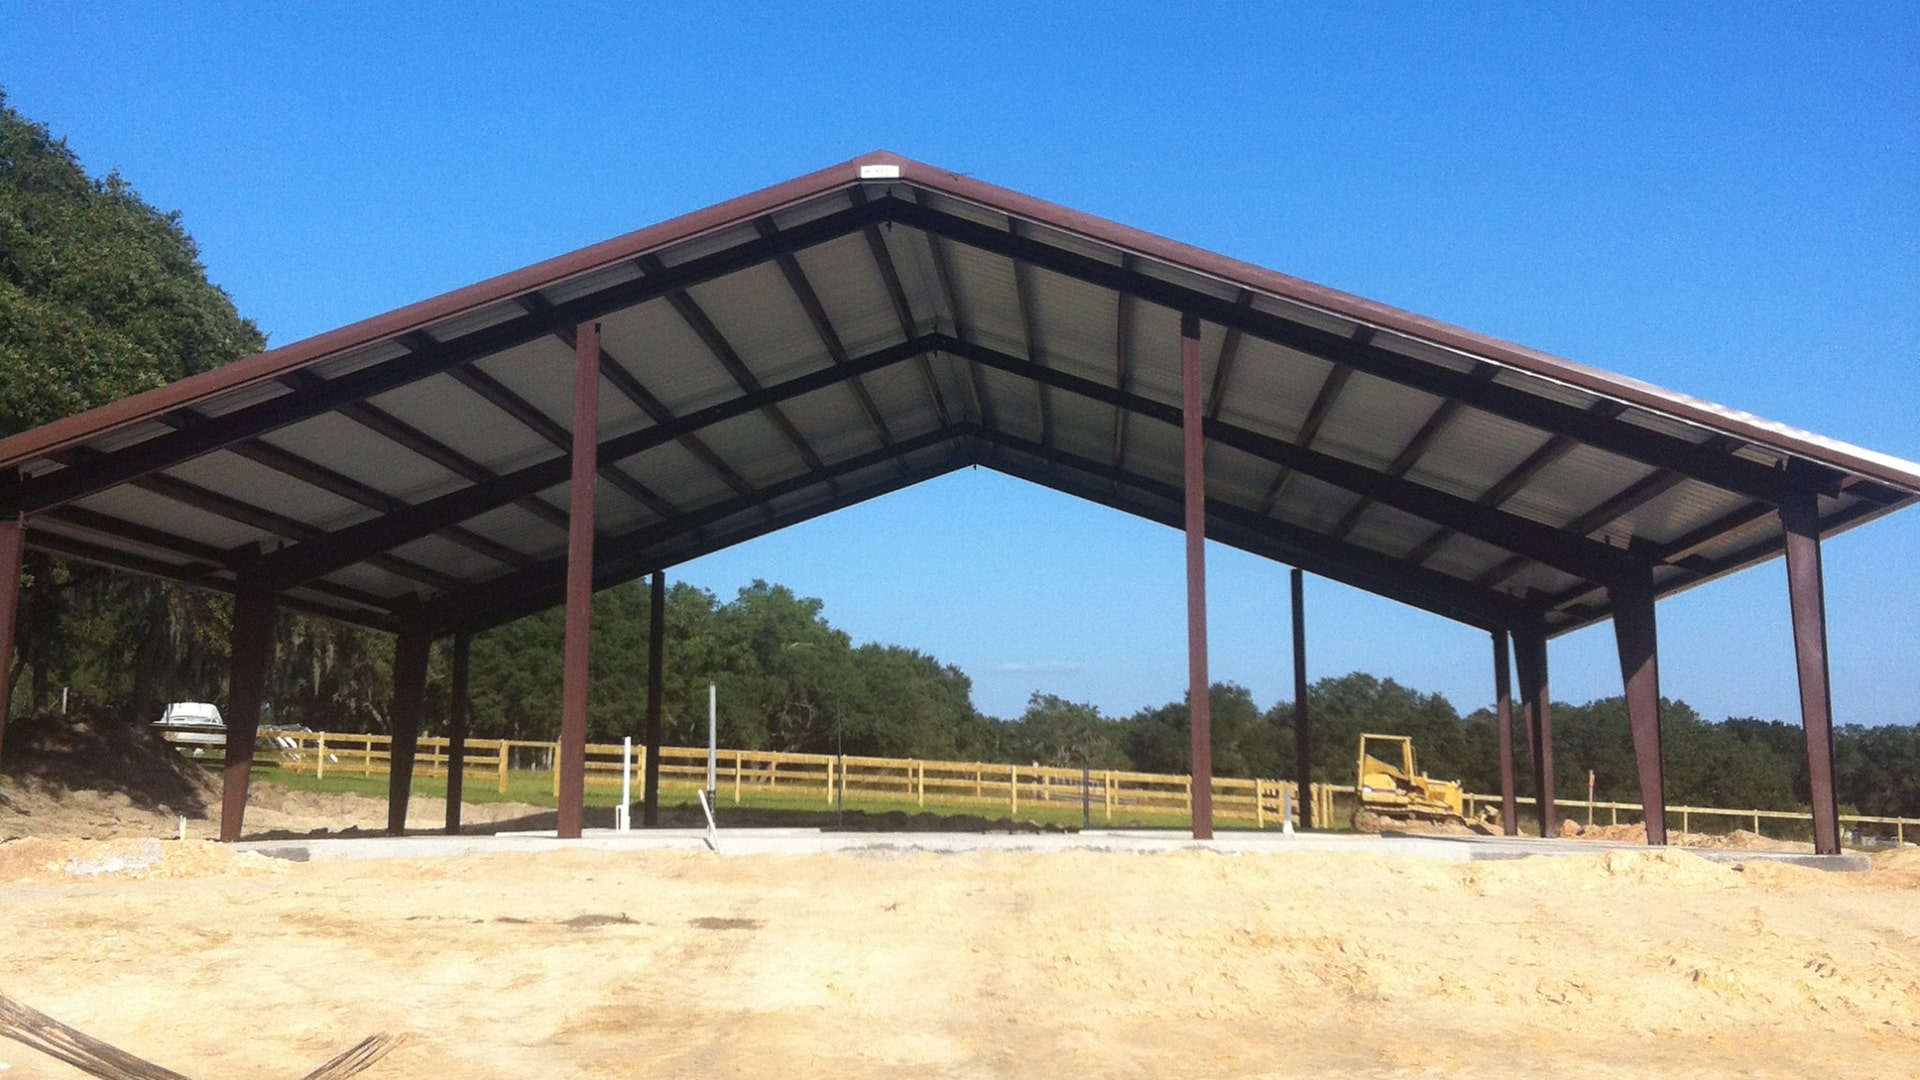 Simple open steel riding arena with steeper roof pitch and brown trim.